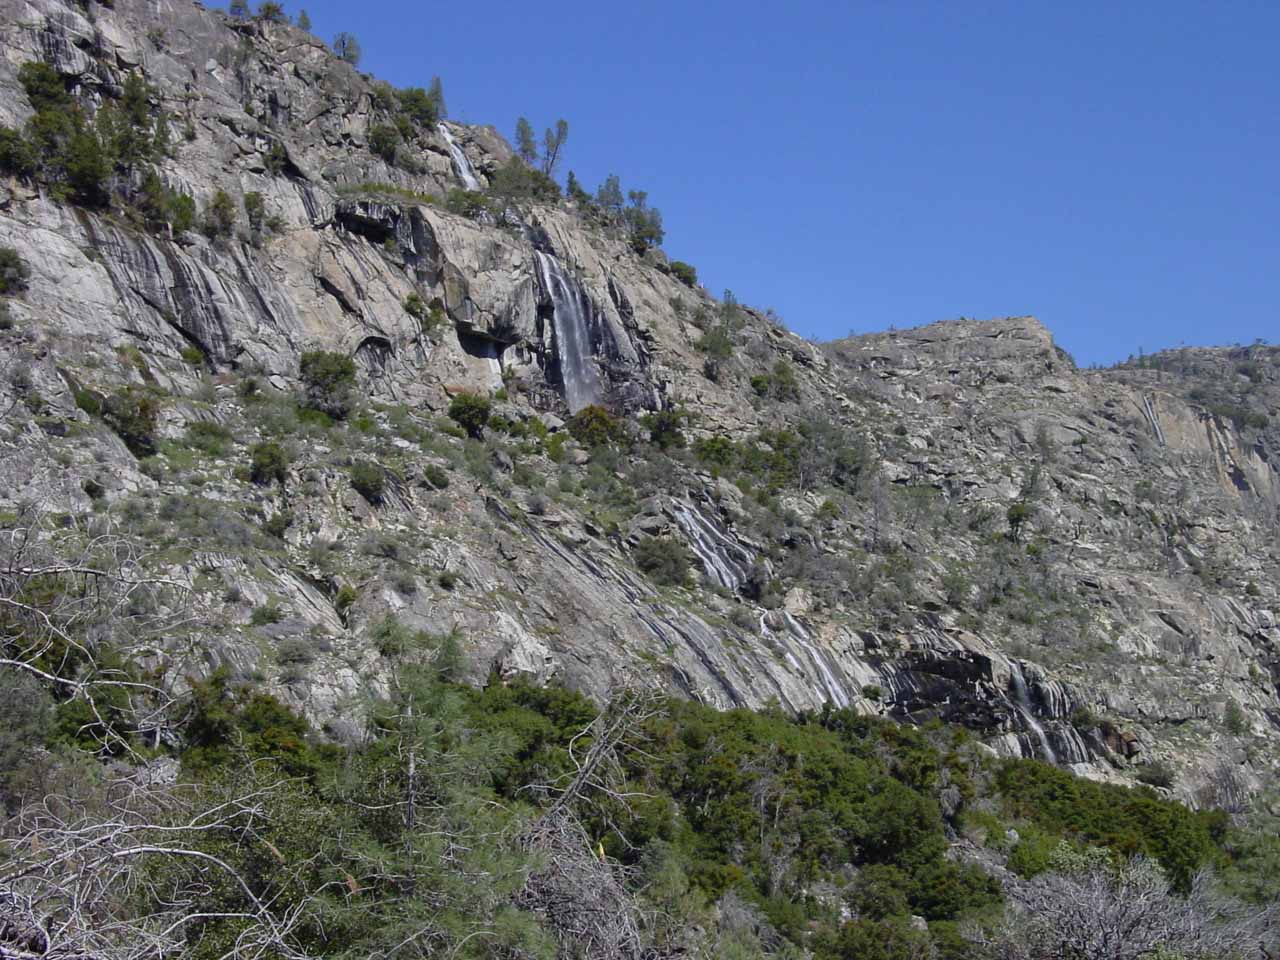 Angled view of some unnamed cascade that sometimes flowed better than Tueeulala Falls in 2004